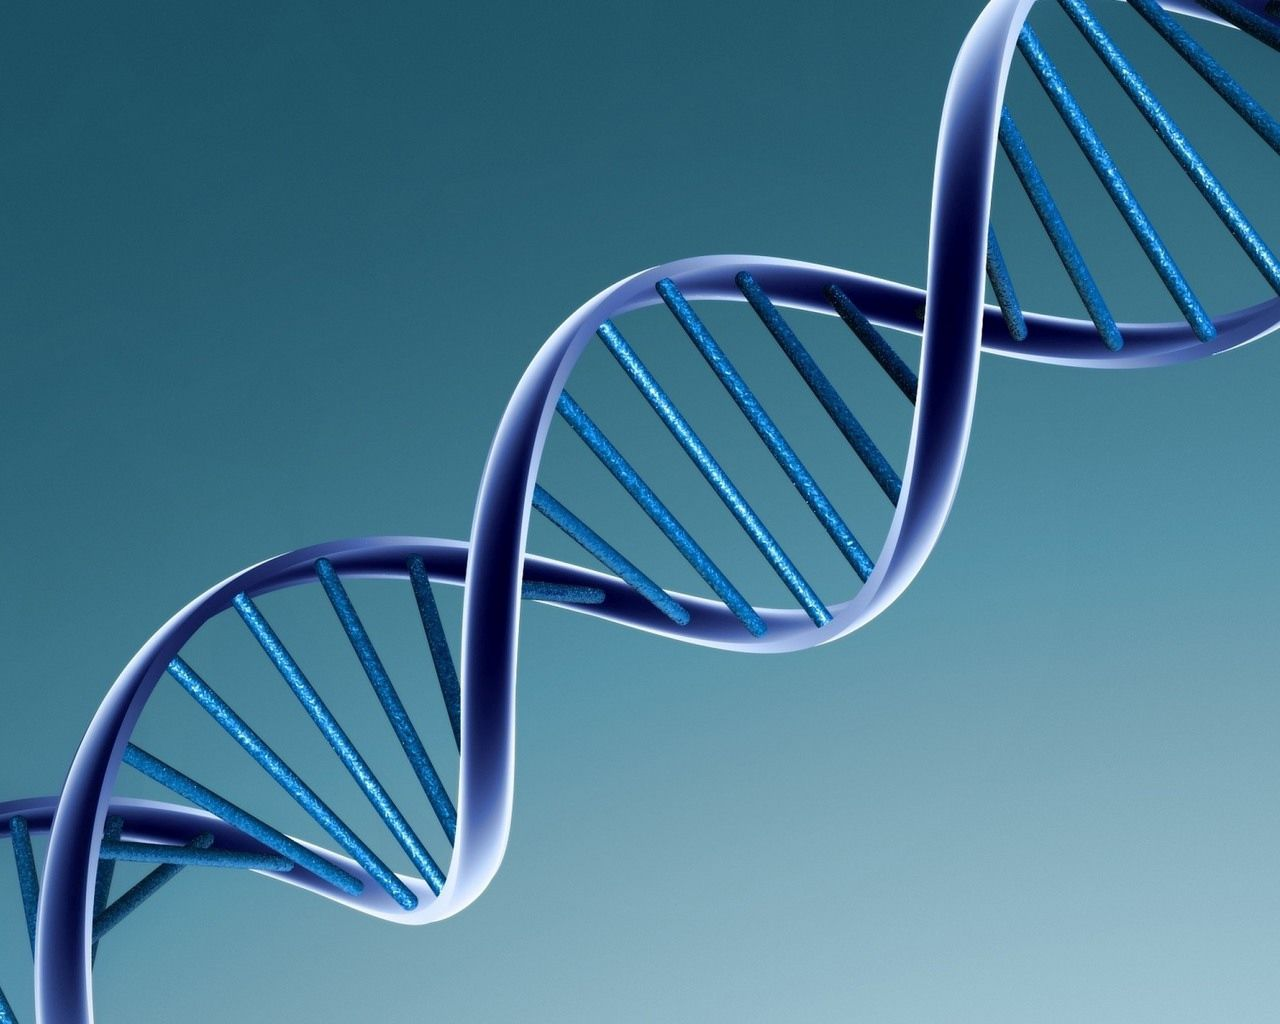 147245 download wallpaper 3D, Dna, Spiral, Grid screensavers and pictures for free